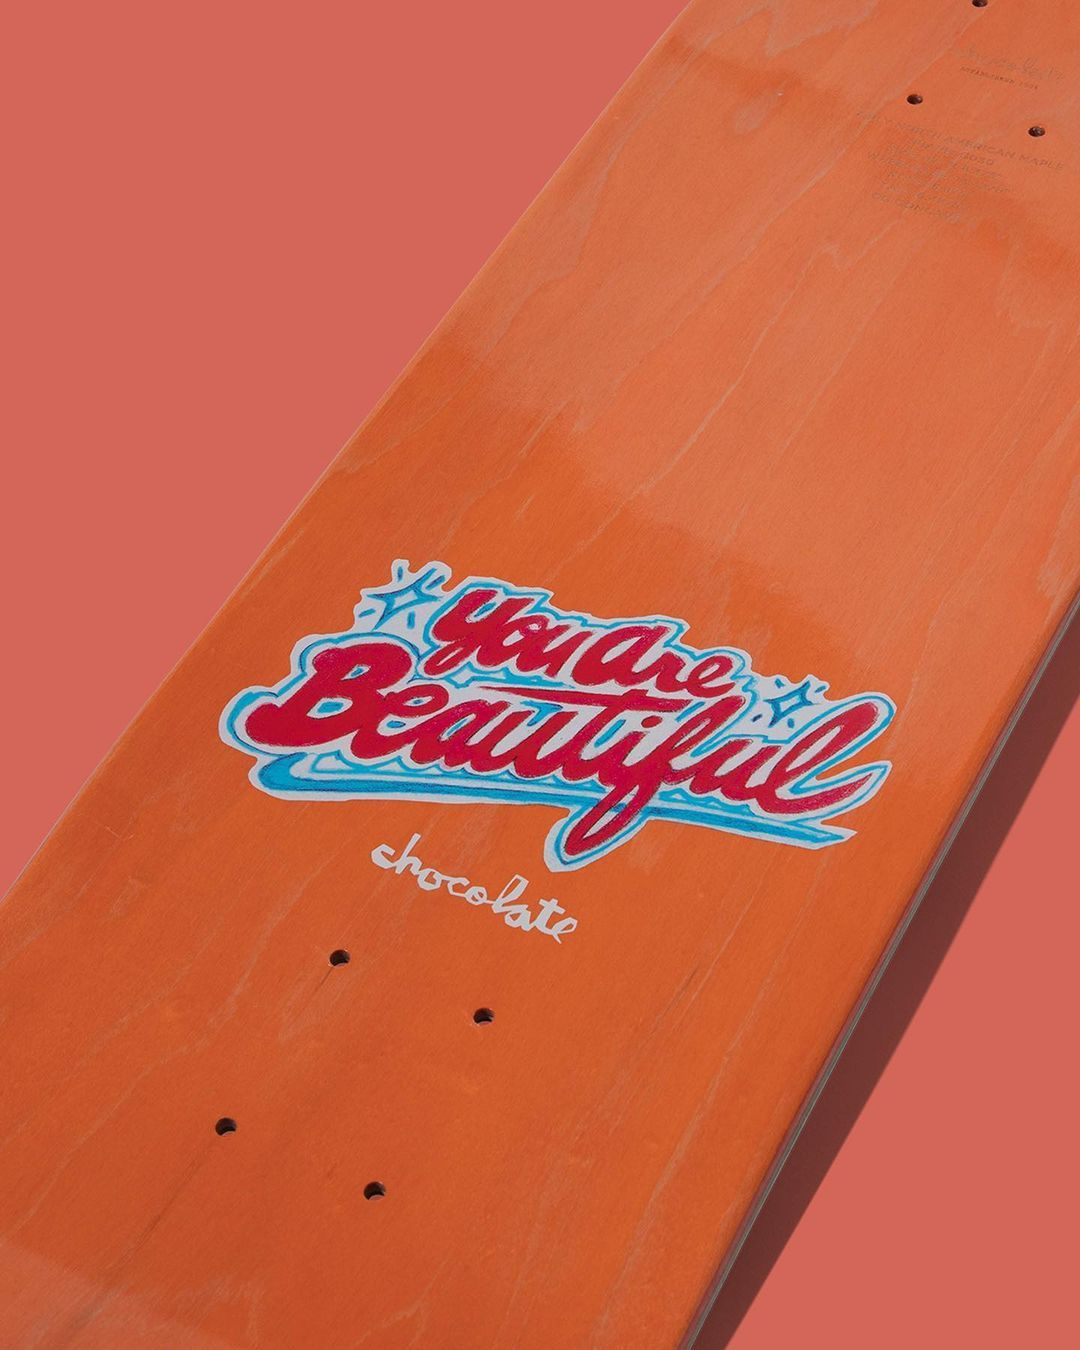 Chocolate Cuts By CMG Loves You For Chocolate Skateboards 6